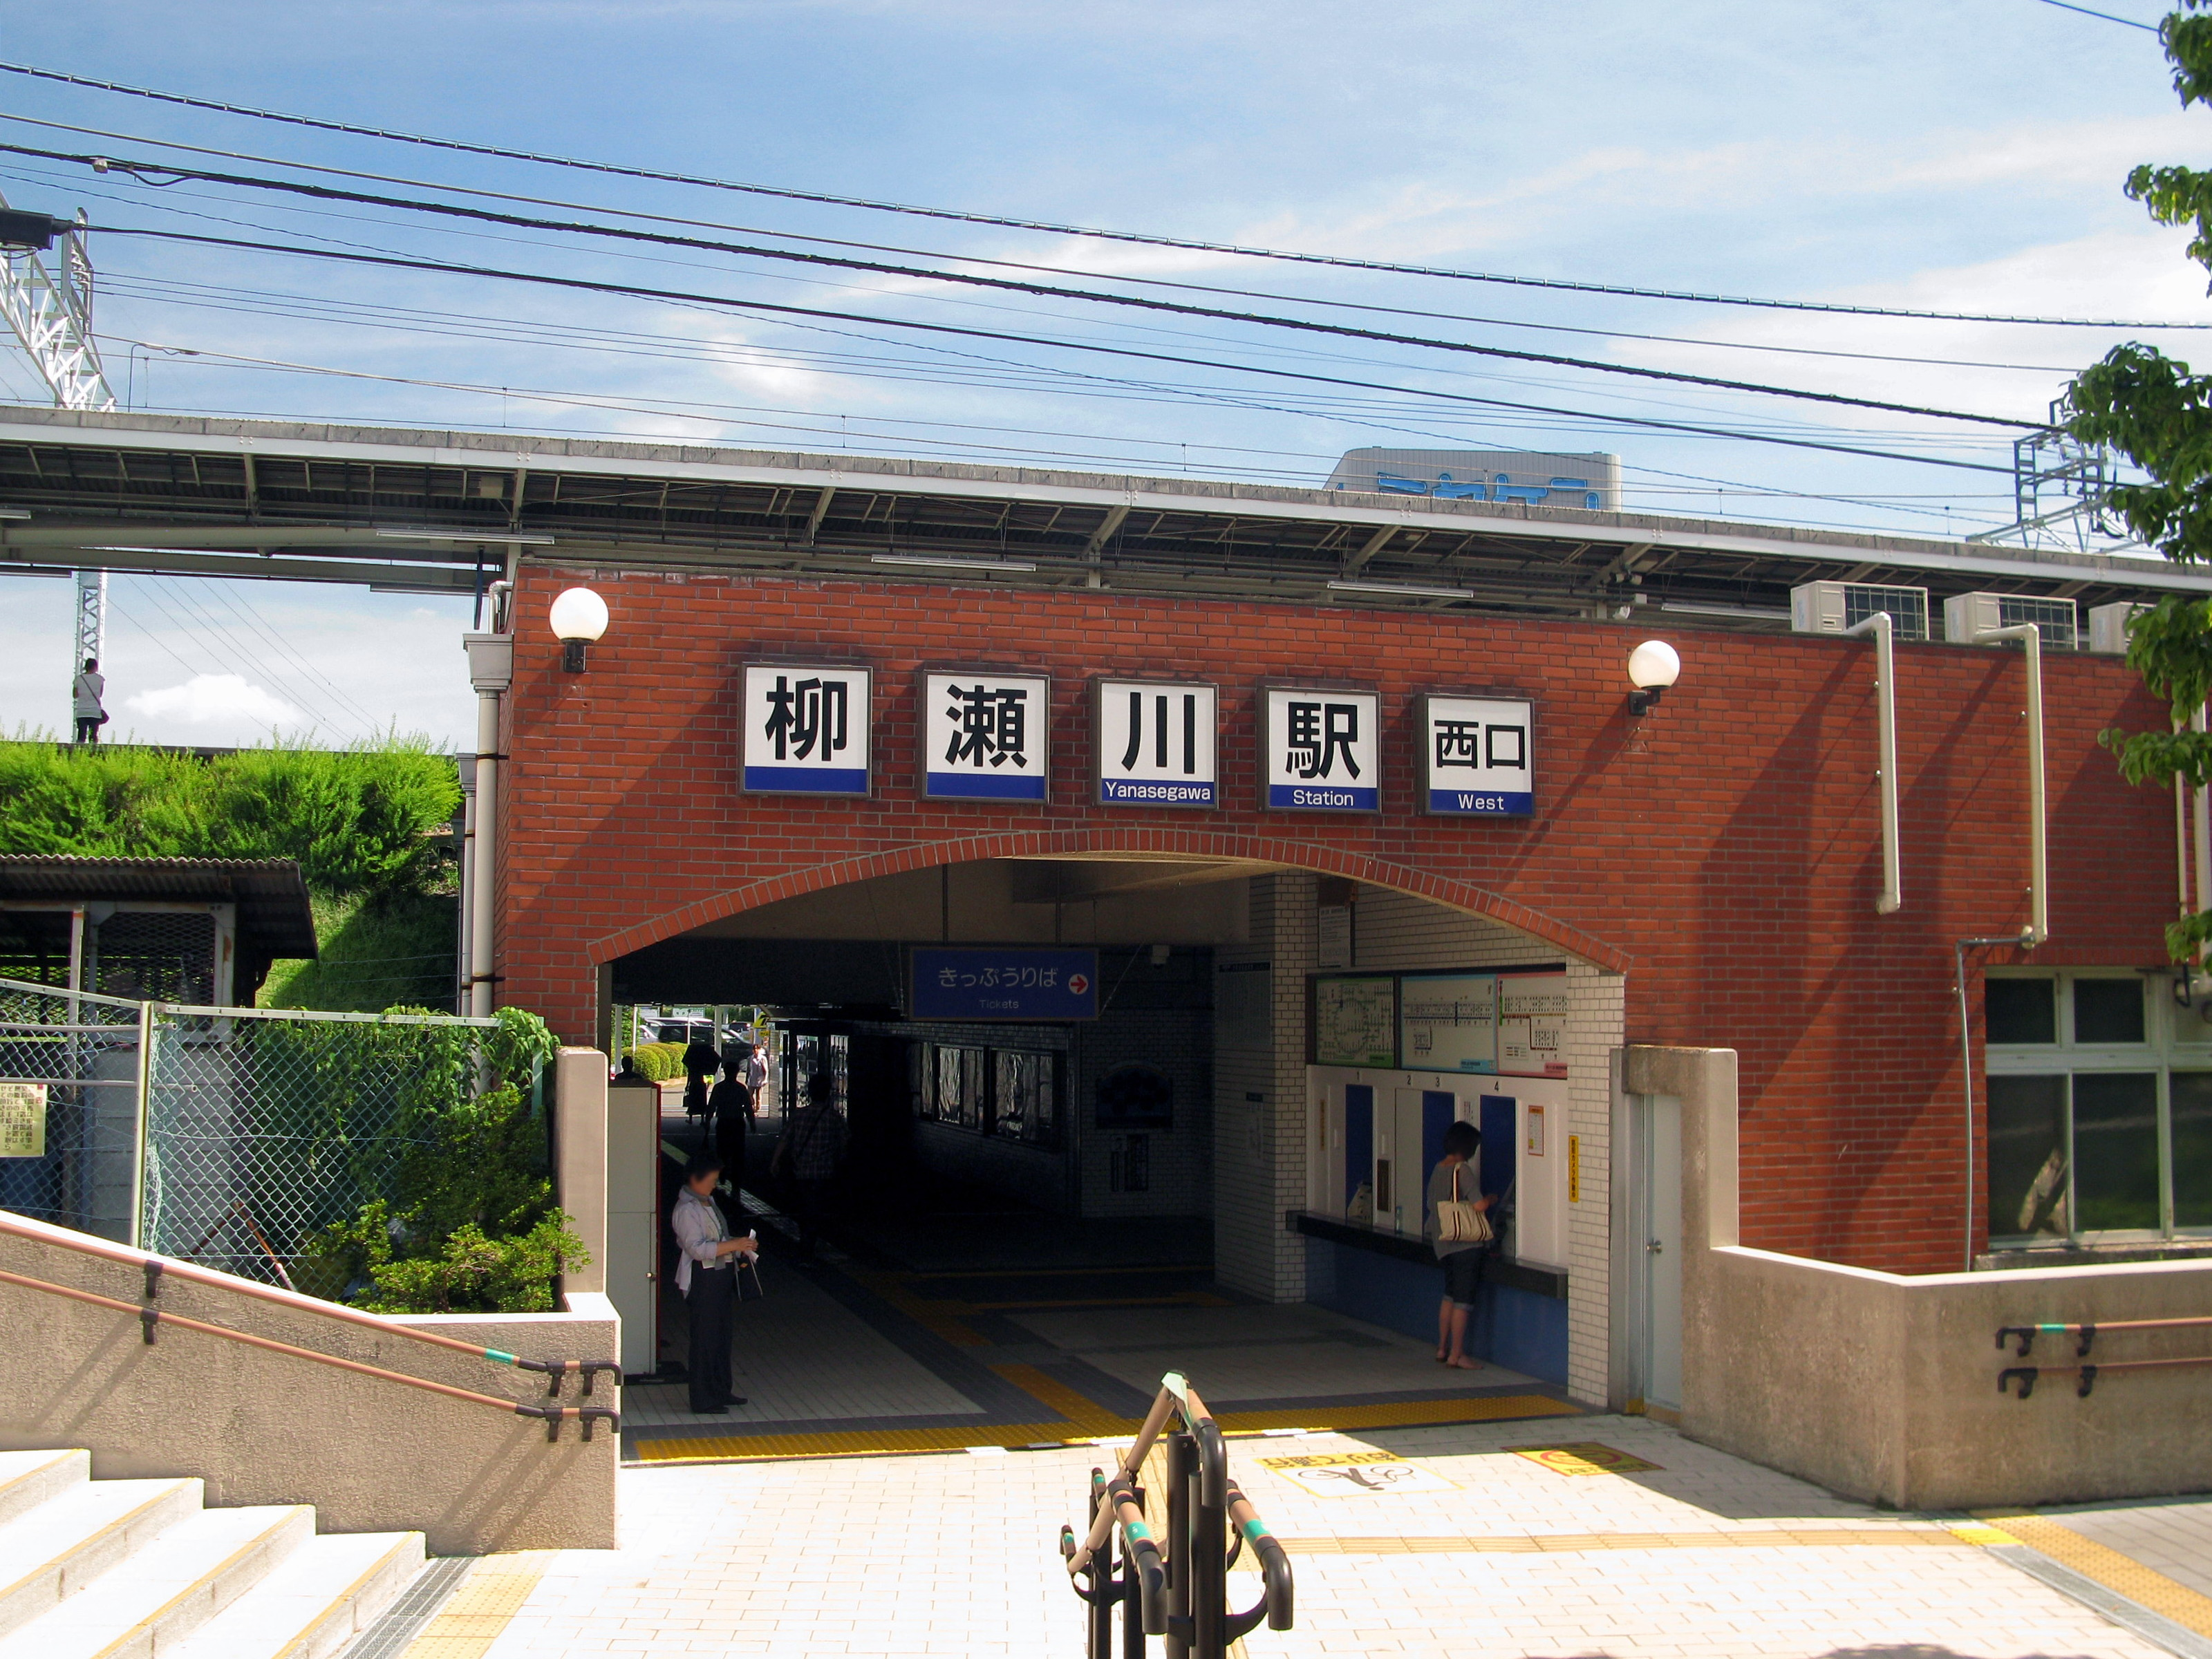 https://upload.wikimedia.org/wikipedia/ja/3/39/Yanasegawa_Station_West_Entrance_1.JPG